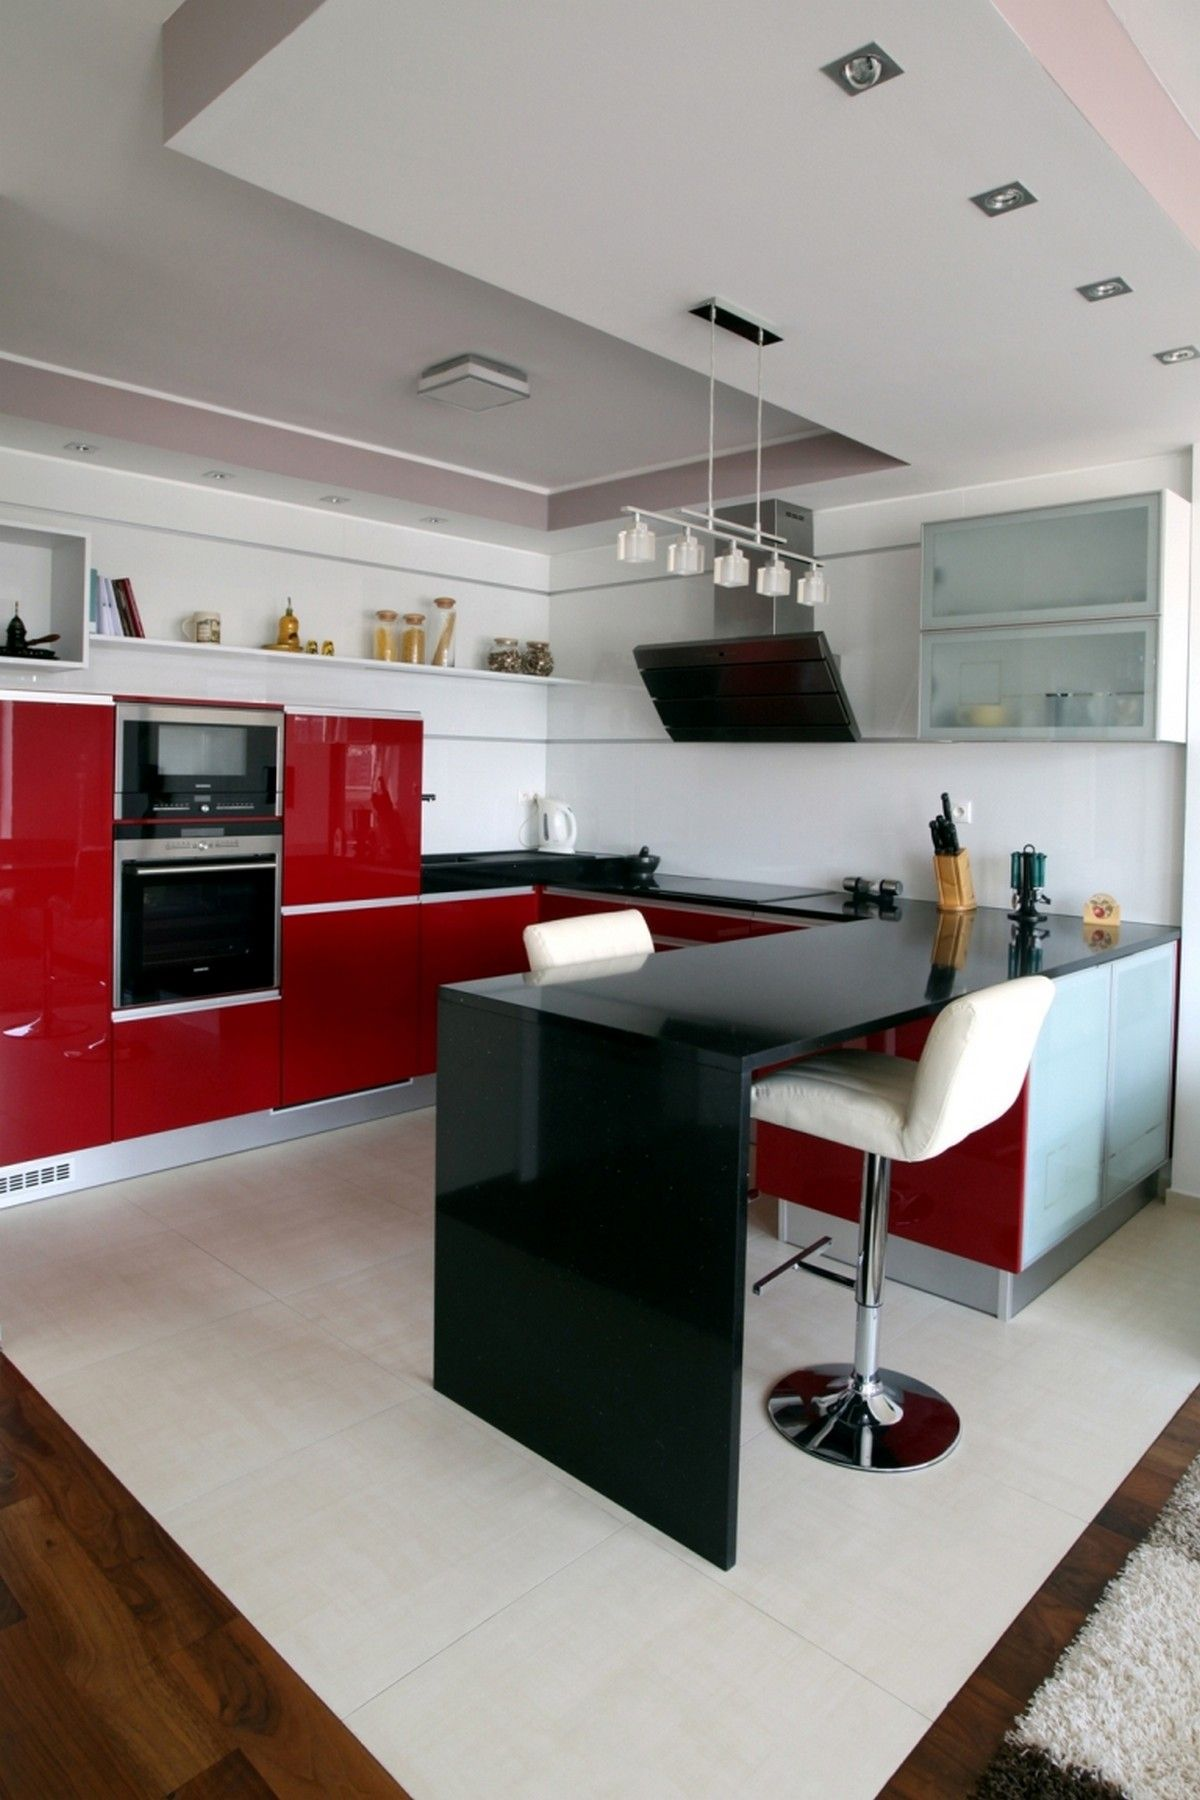 Apartment In Slovakia Uncovering Modern Details With A